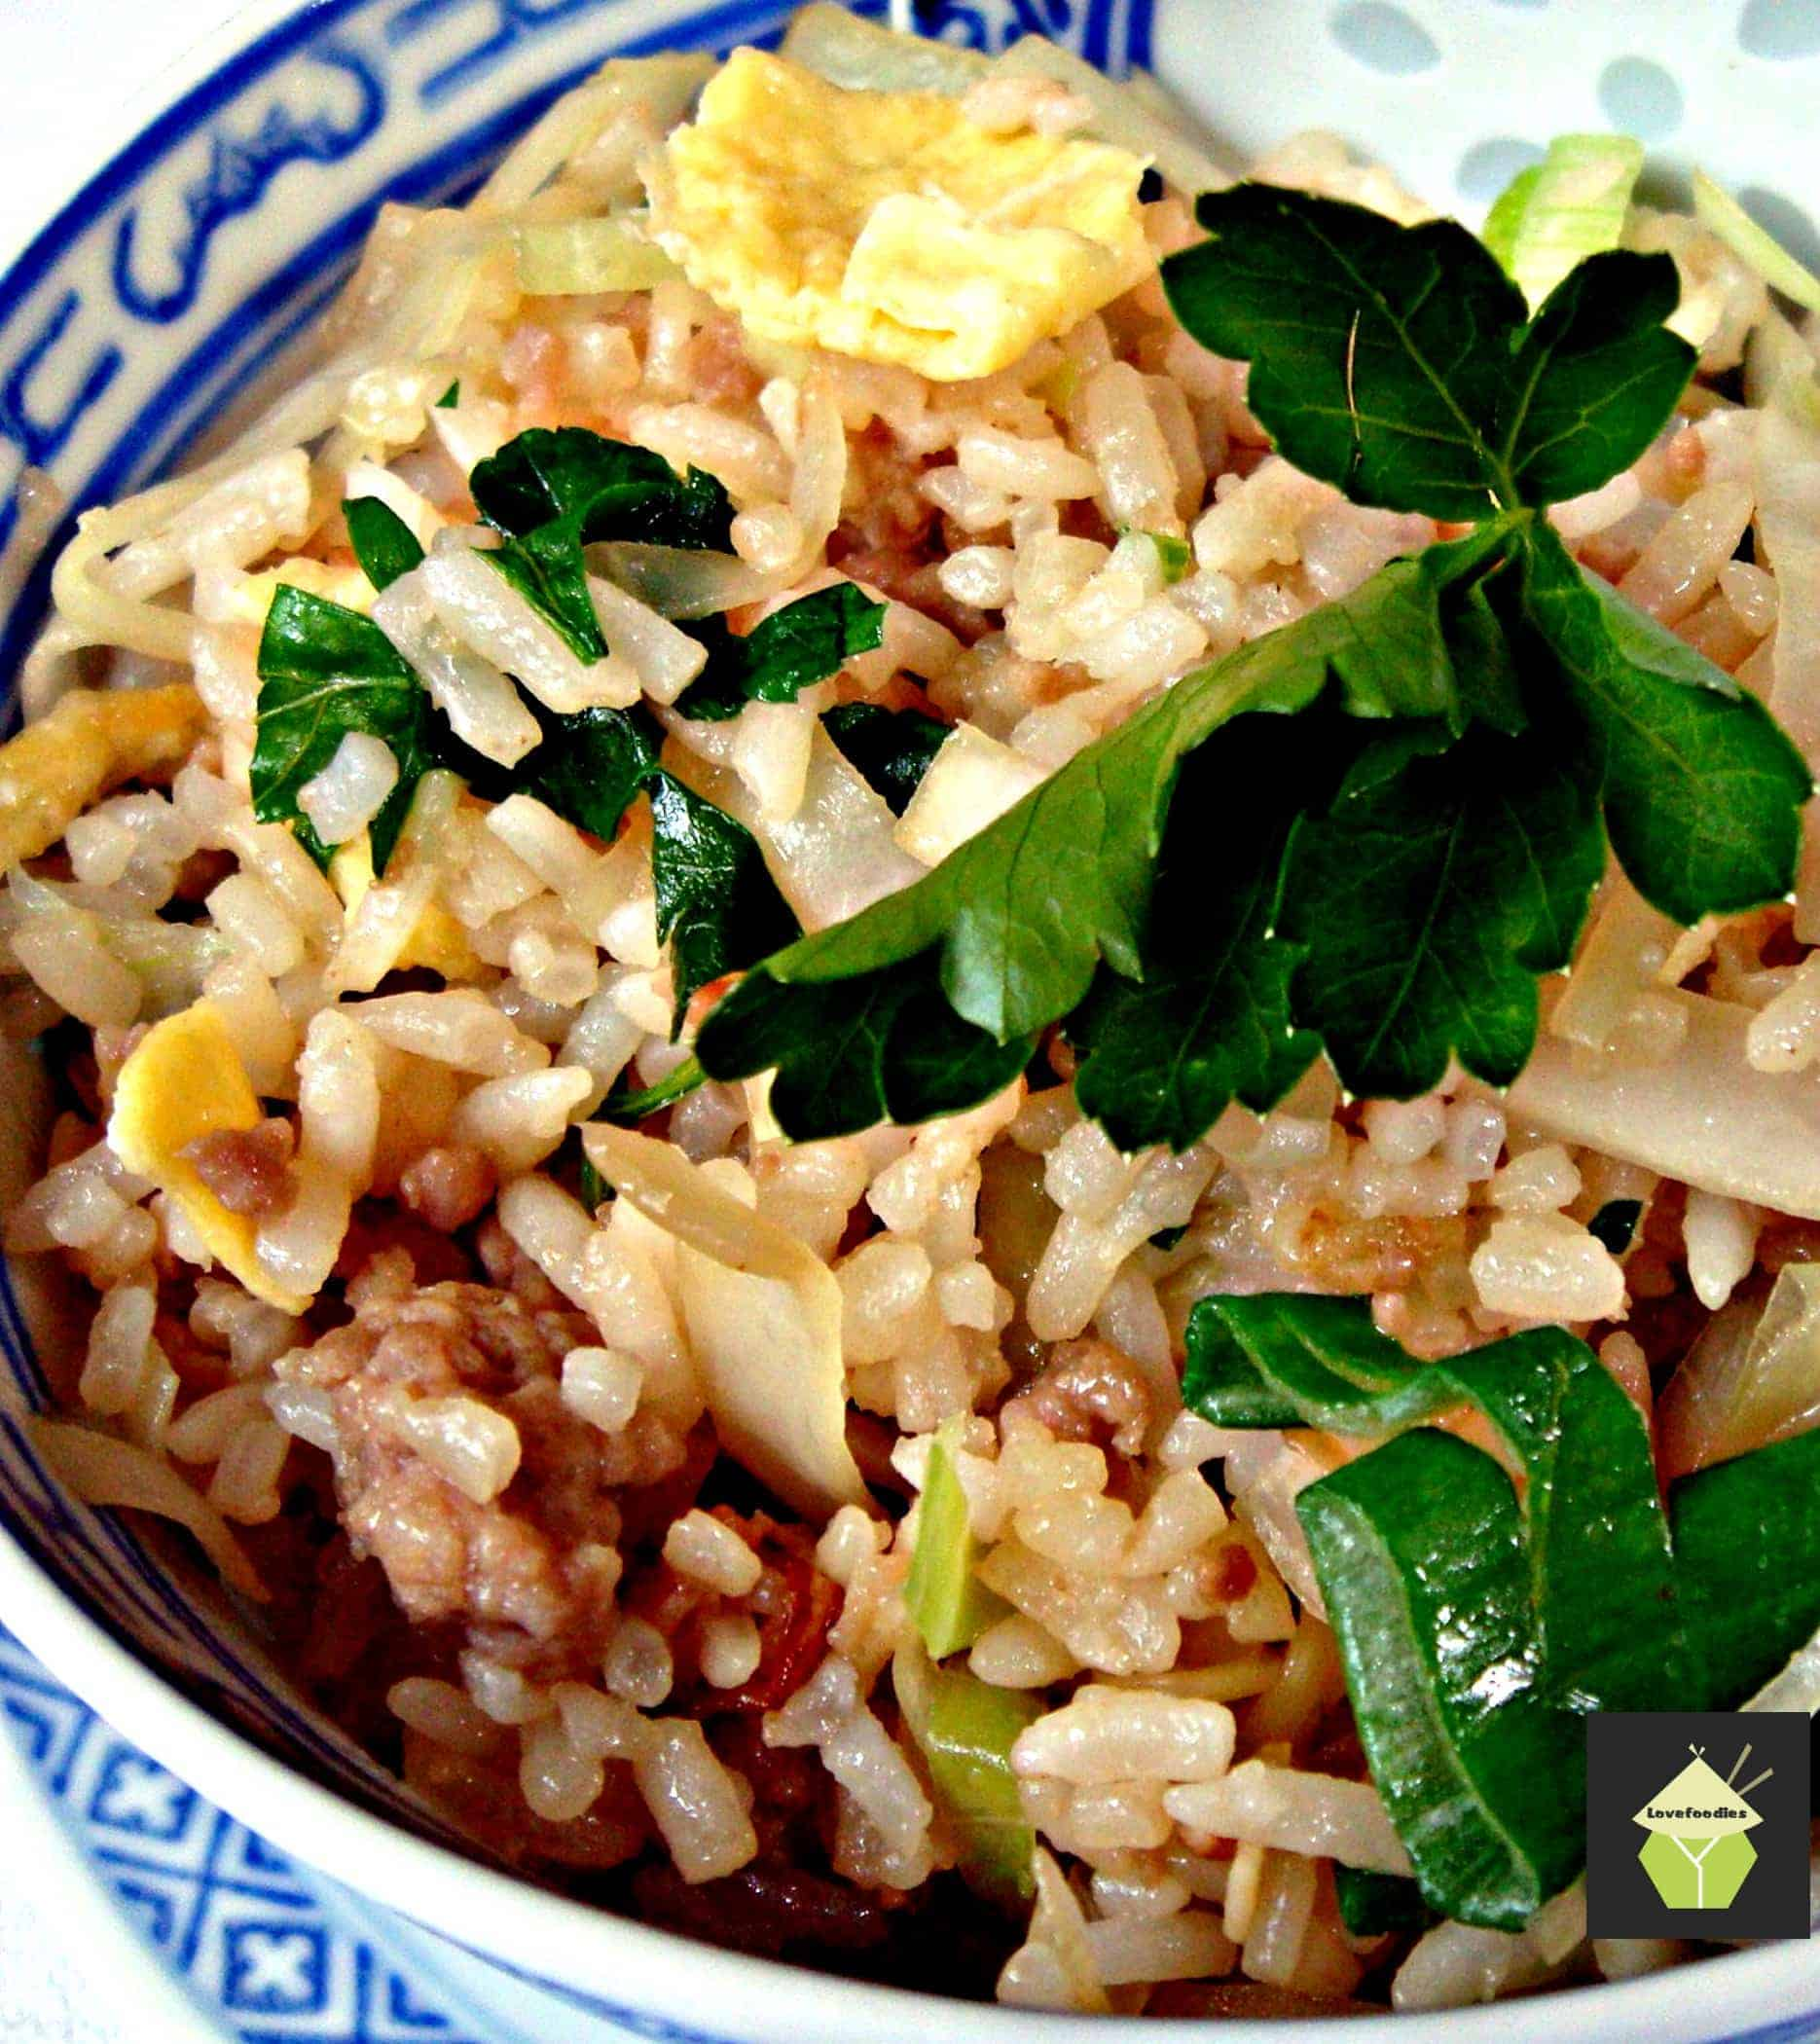 Quick and Simple Fried Rice, flexible ingredients and great tasting!